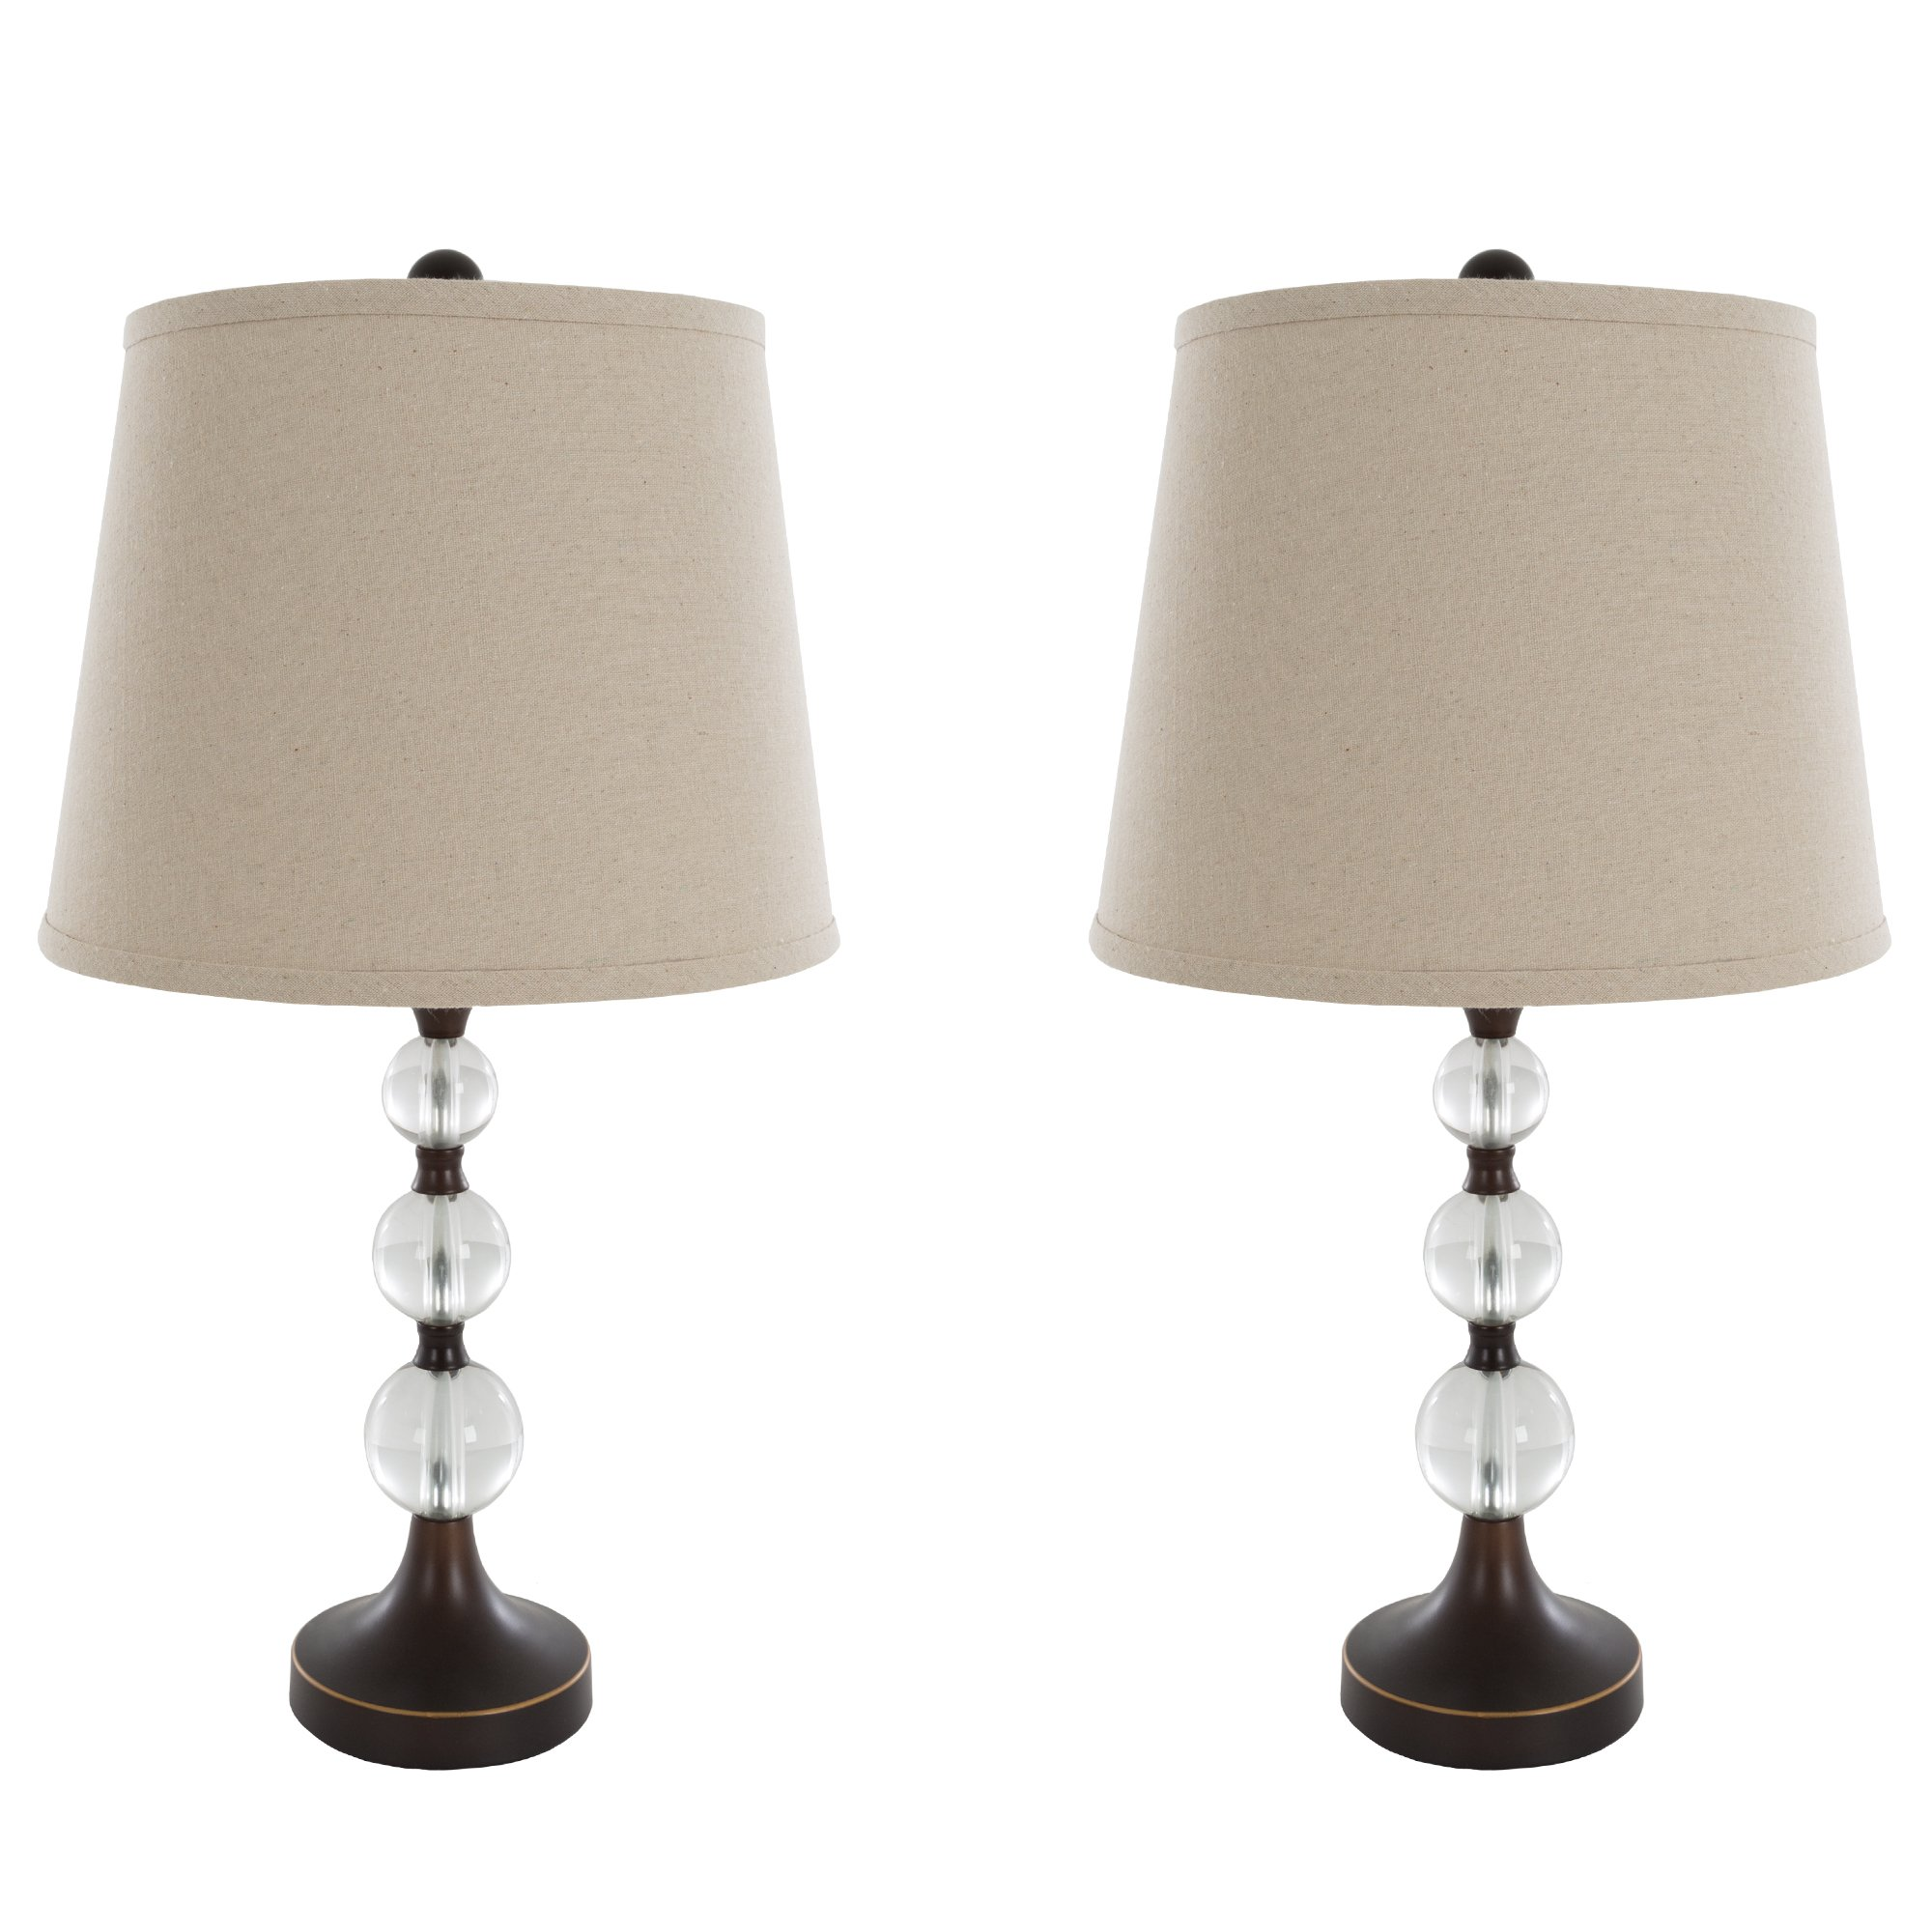 Table Lamps Set of 2, Crystal Balls with Bronze (2 LED Bulbs included) by Lavish Home